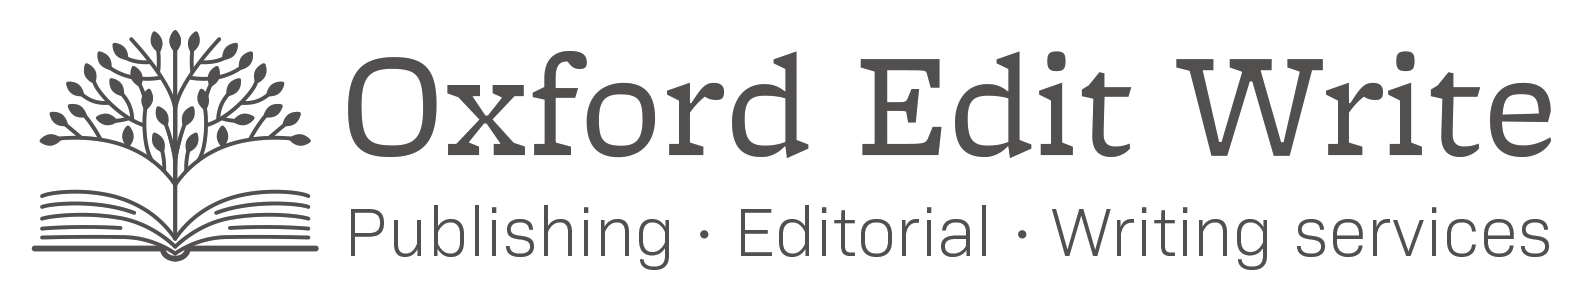 Oxford Edit Write | Publishing. Editorial. Writing Services